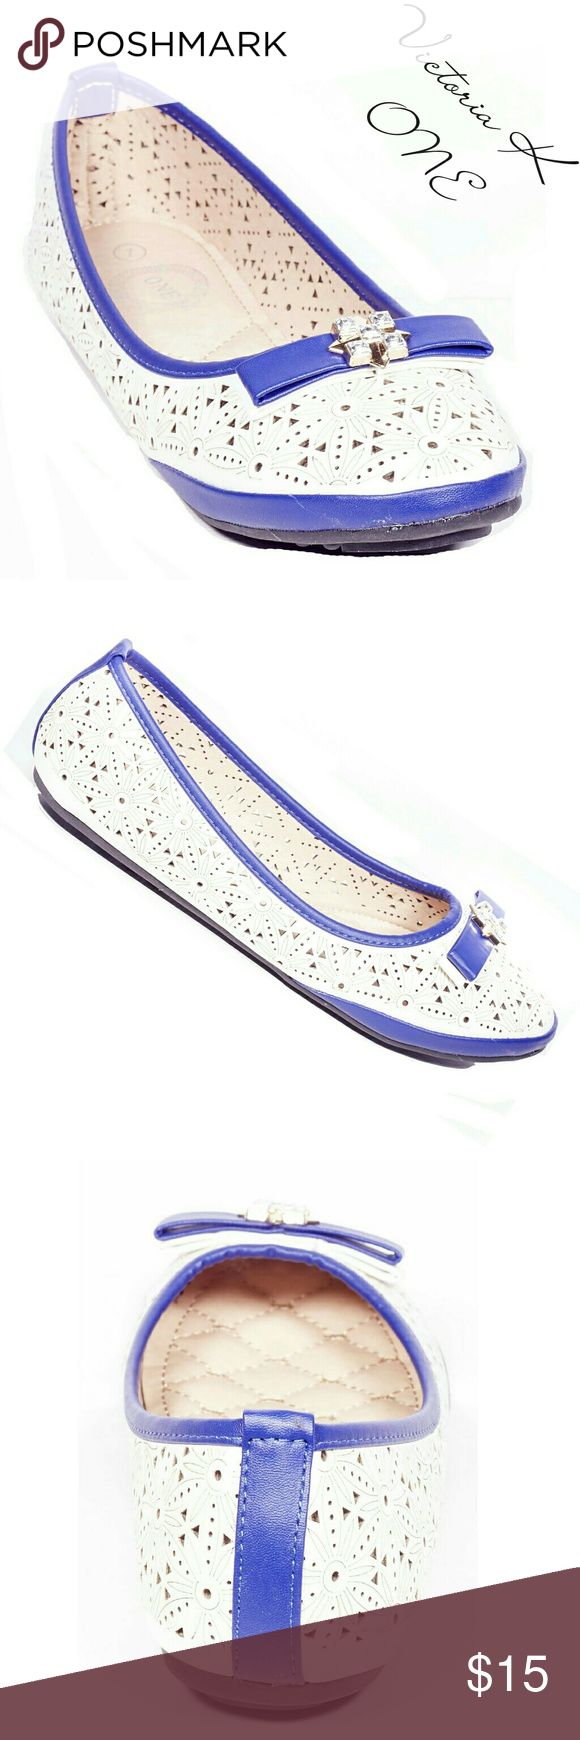 """Women Ballerina Flats with Bow, b-2094, Beige Blue Brand new style! Victoria K perforated two-color, beige and blue, woman ballerina flats with a sparkle-studded bow in the front. From the ONE collection. Soft sole, very comfortable. Bubbled bottom sole for extra traction. A true staple in ladies shoes fashion! Measurements: size 7 measures 9.5"""", sz 7.5 - 9 3/4"""", sz 8 - 10"""", sz 8.5 - 10 1/4"""", sz 9 - 10.5"""", all half sizes are in 1/4"""" increments of each other. Tory K  Shoes Flats & Loafers"""